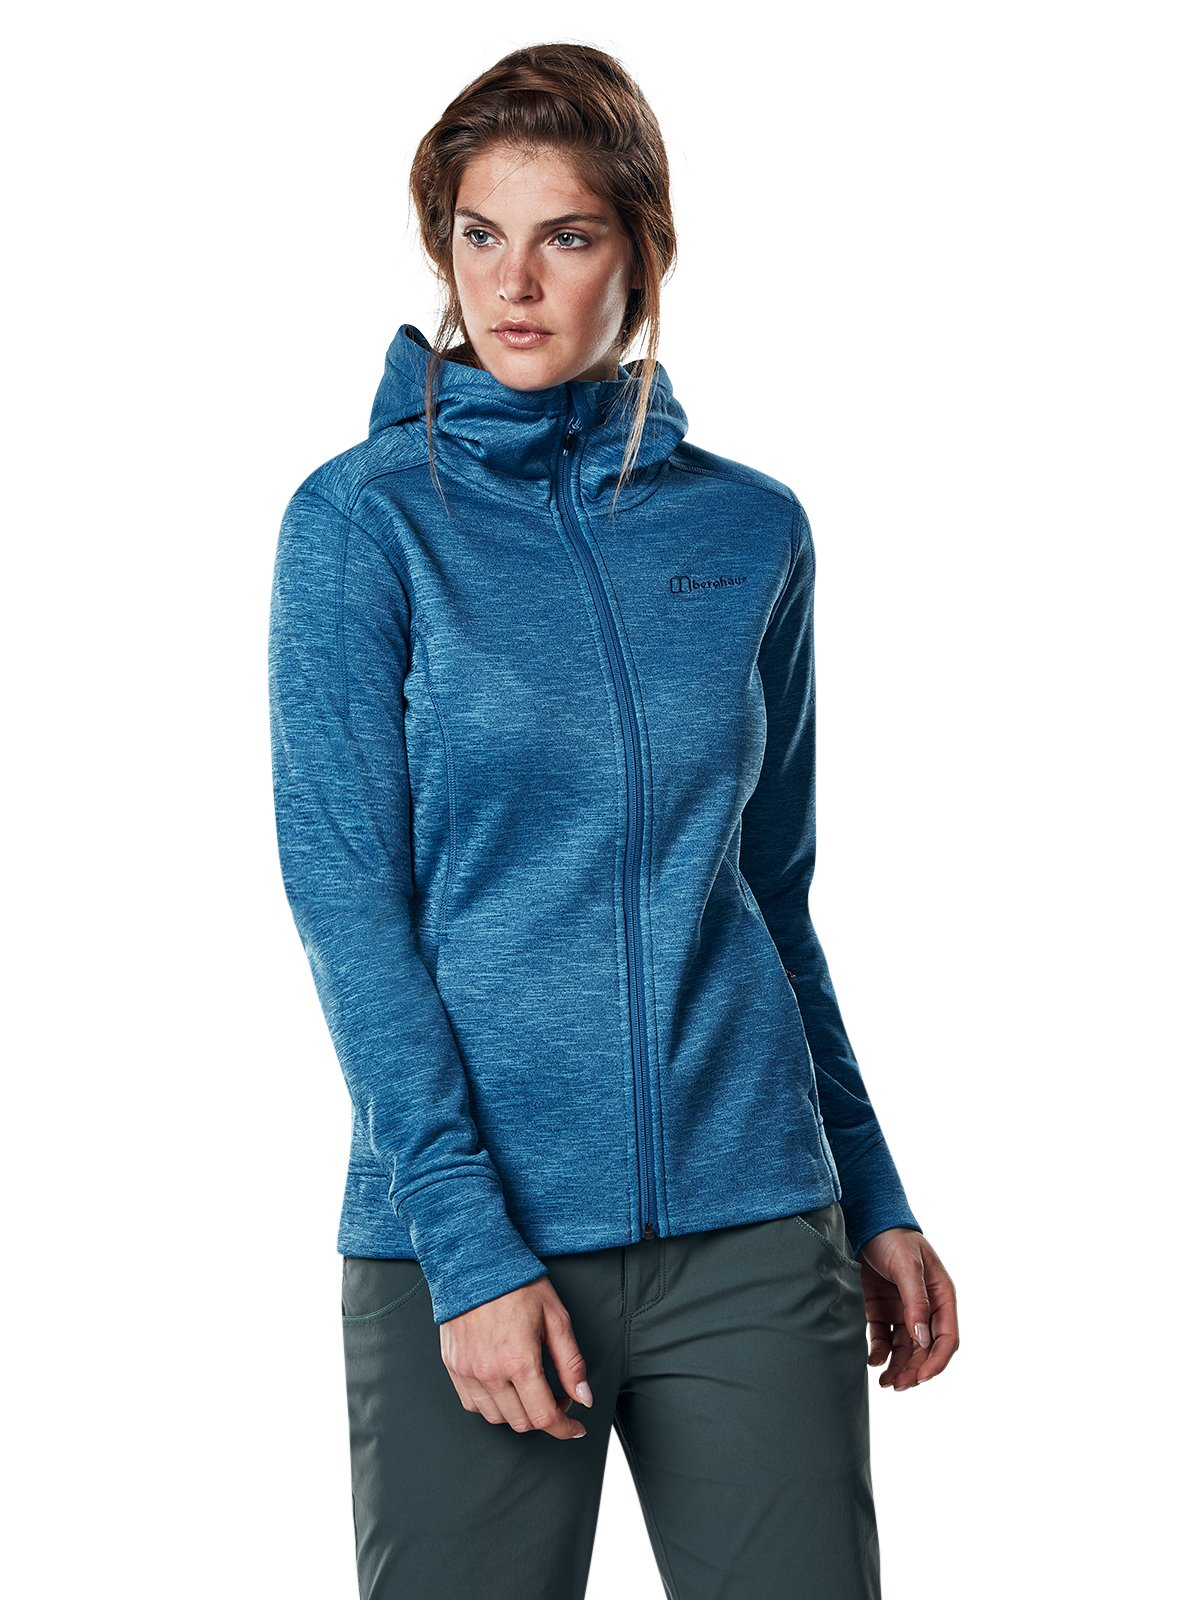 71iviqT1fkL - Berghaus Women's Kamloops Full Zip Fleece Jacket